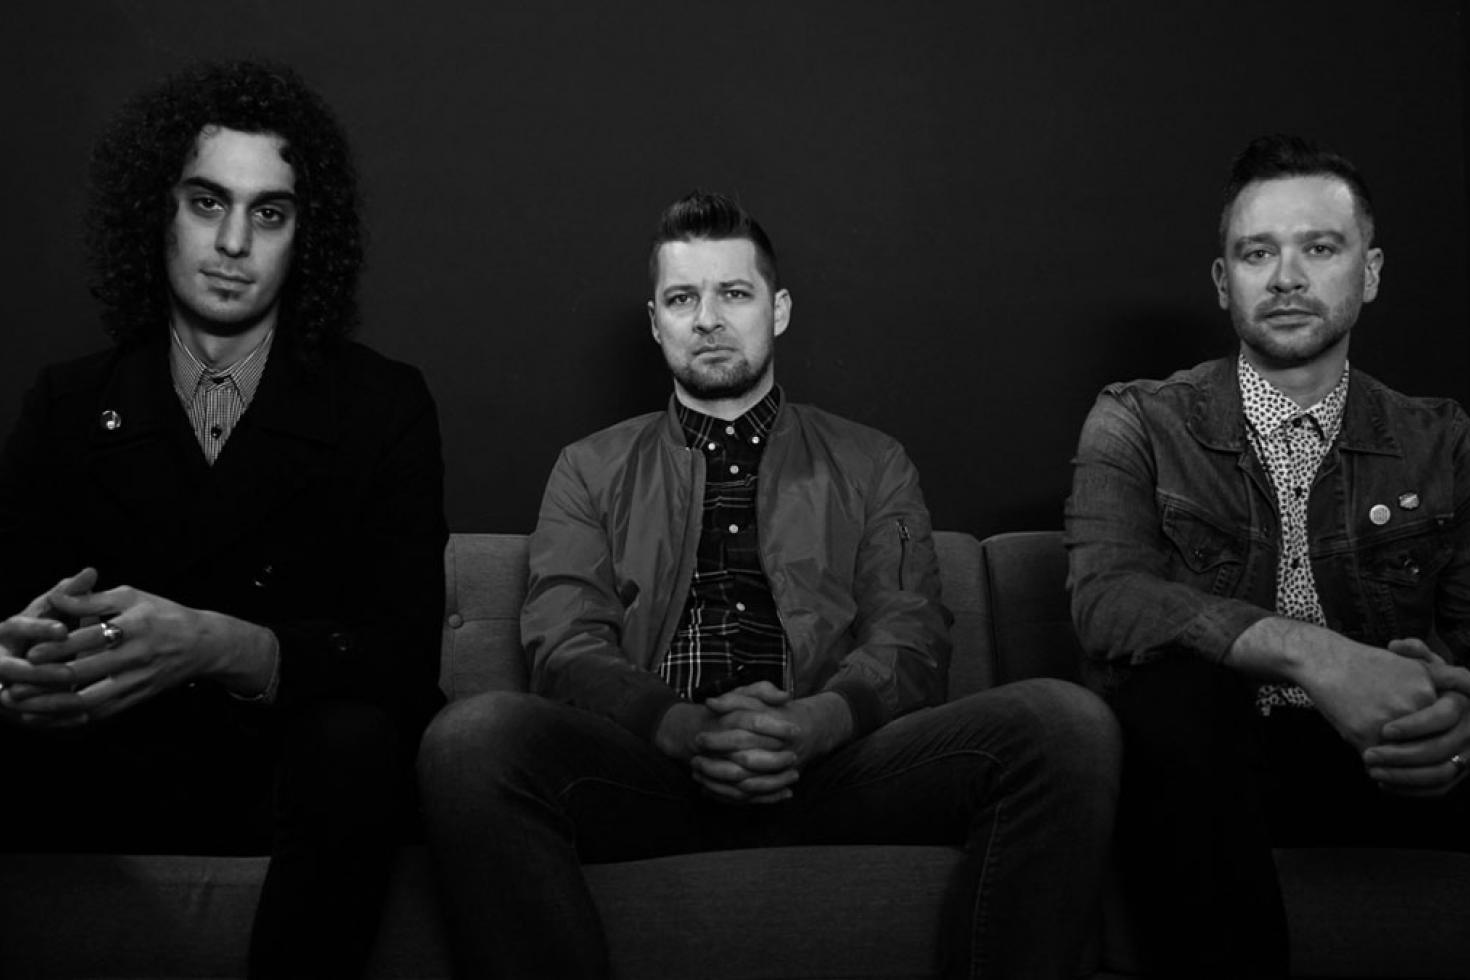 PREMIERE: Compress Collide share video for single 'Oh No'